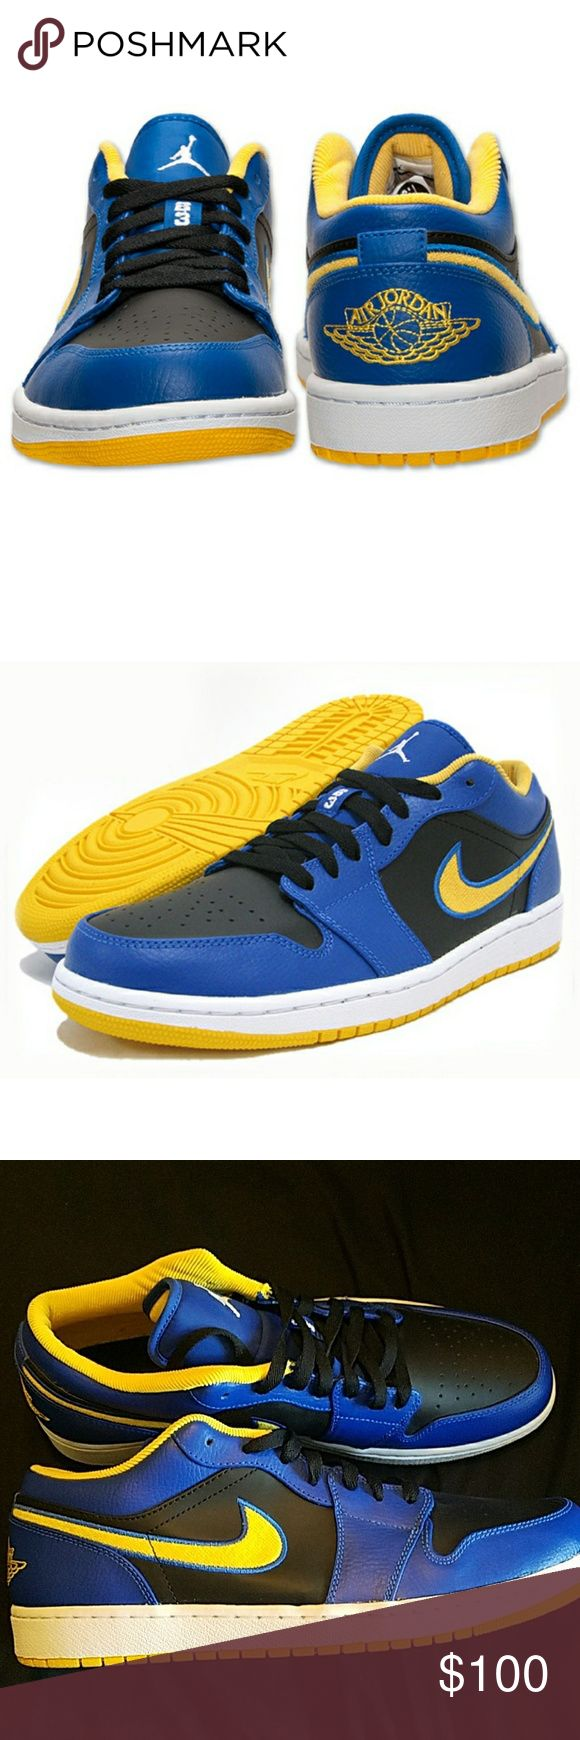 Air Jordan 1 Low Game Royal/Varsity Maize The all-leather upper pairs royal blue overlays with black inlays, setting the table with complementary shades before gold on the Swoosh, inner-lining and outsole starkly contrasts.  New without box, bever worn Nike Shoes Sneakers